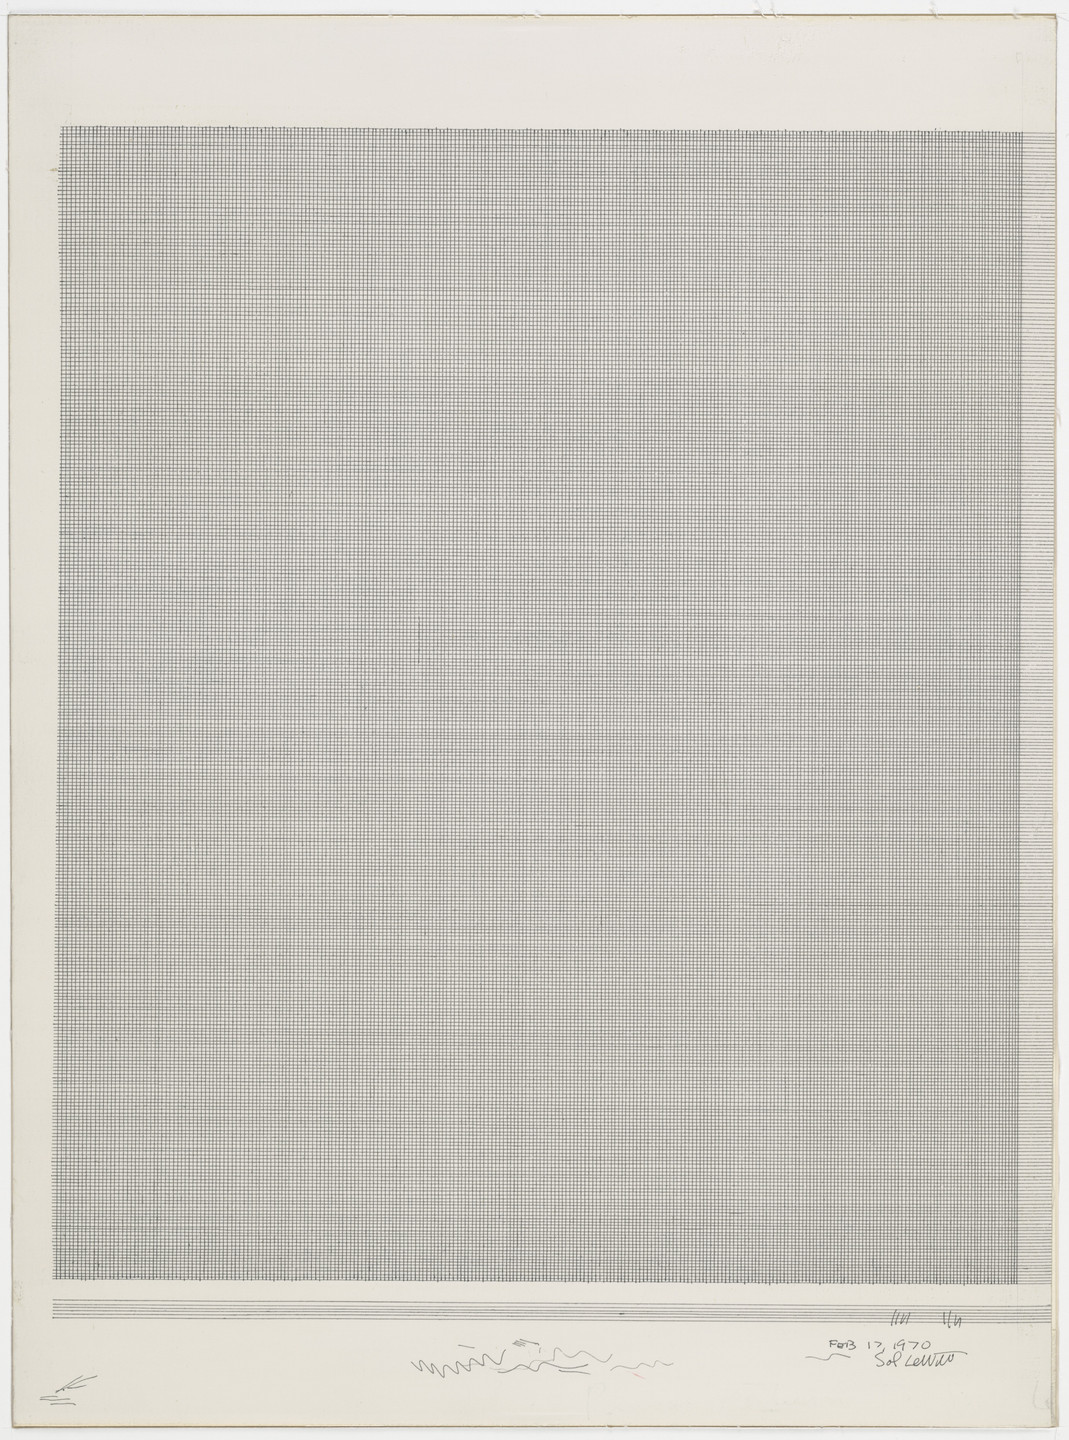 Sol LeWitt. Vertical and Horizontal Lines. 1970